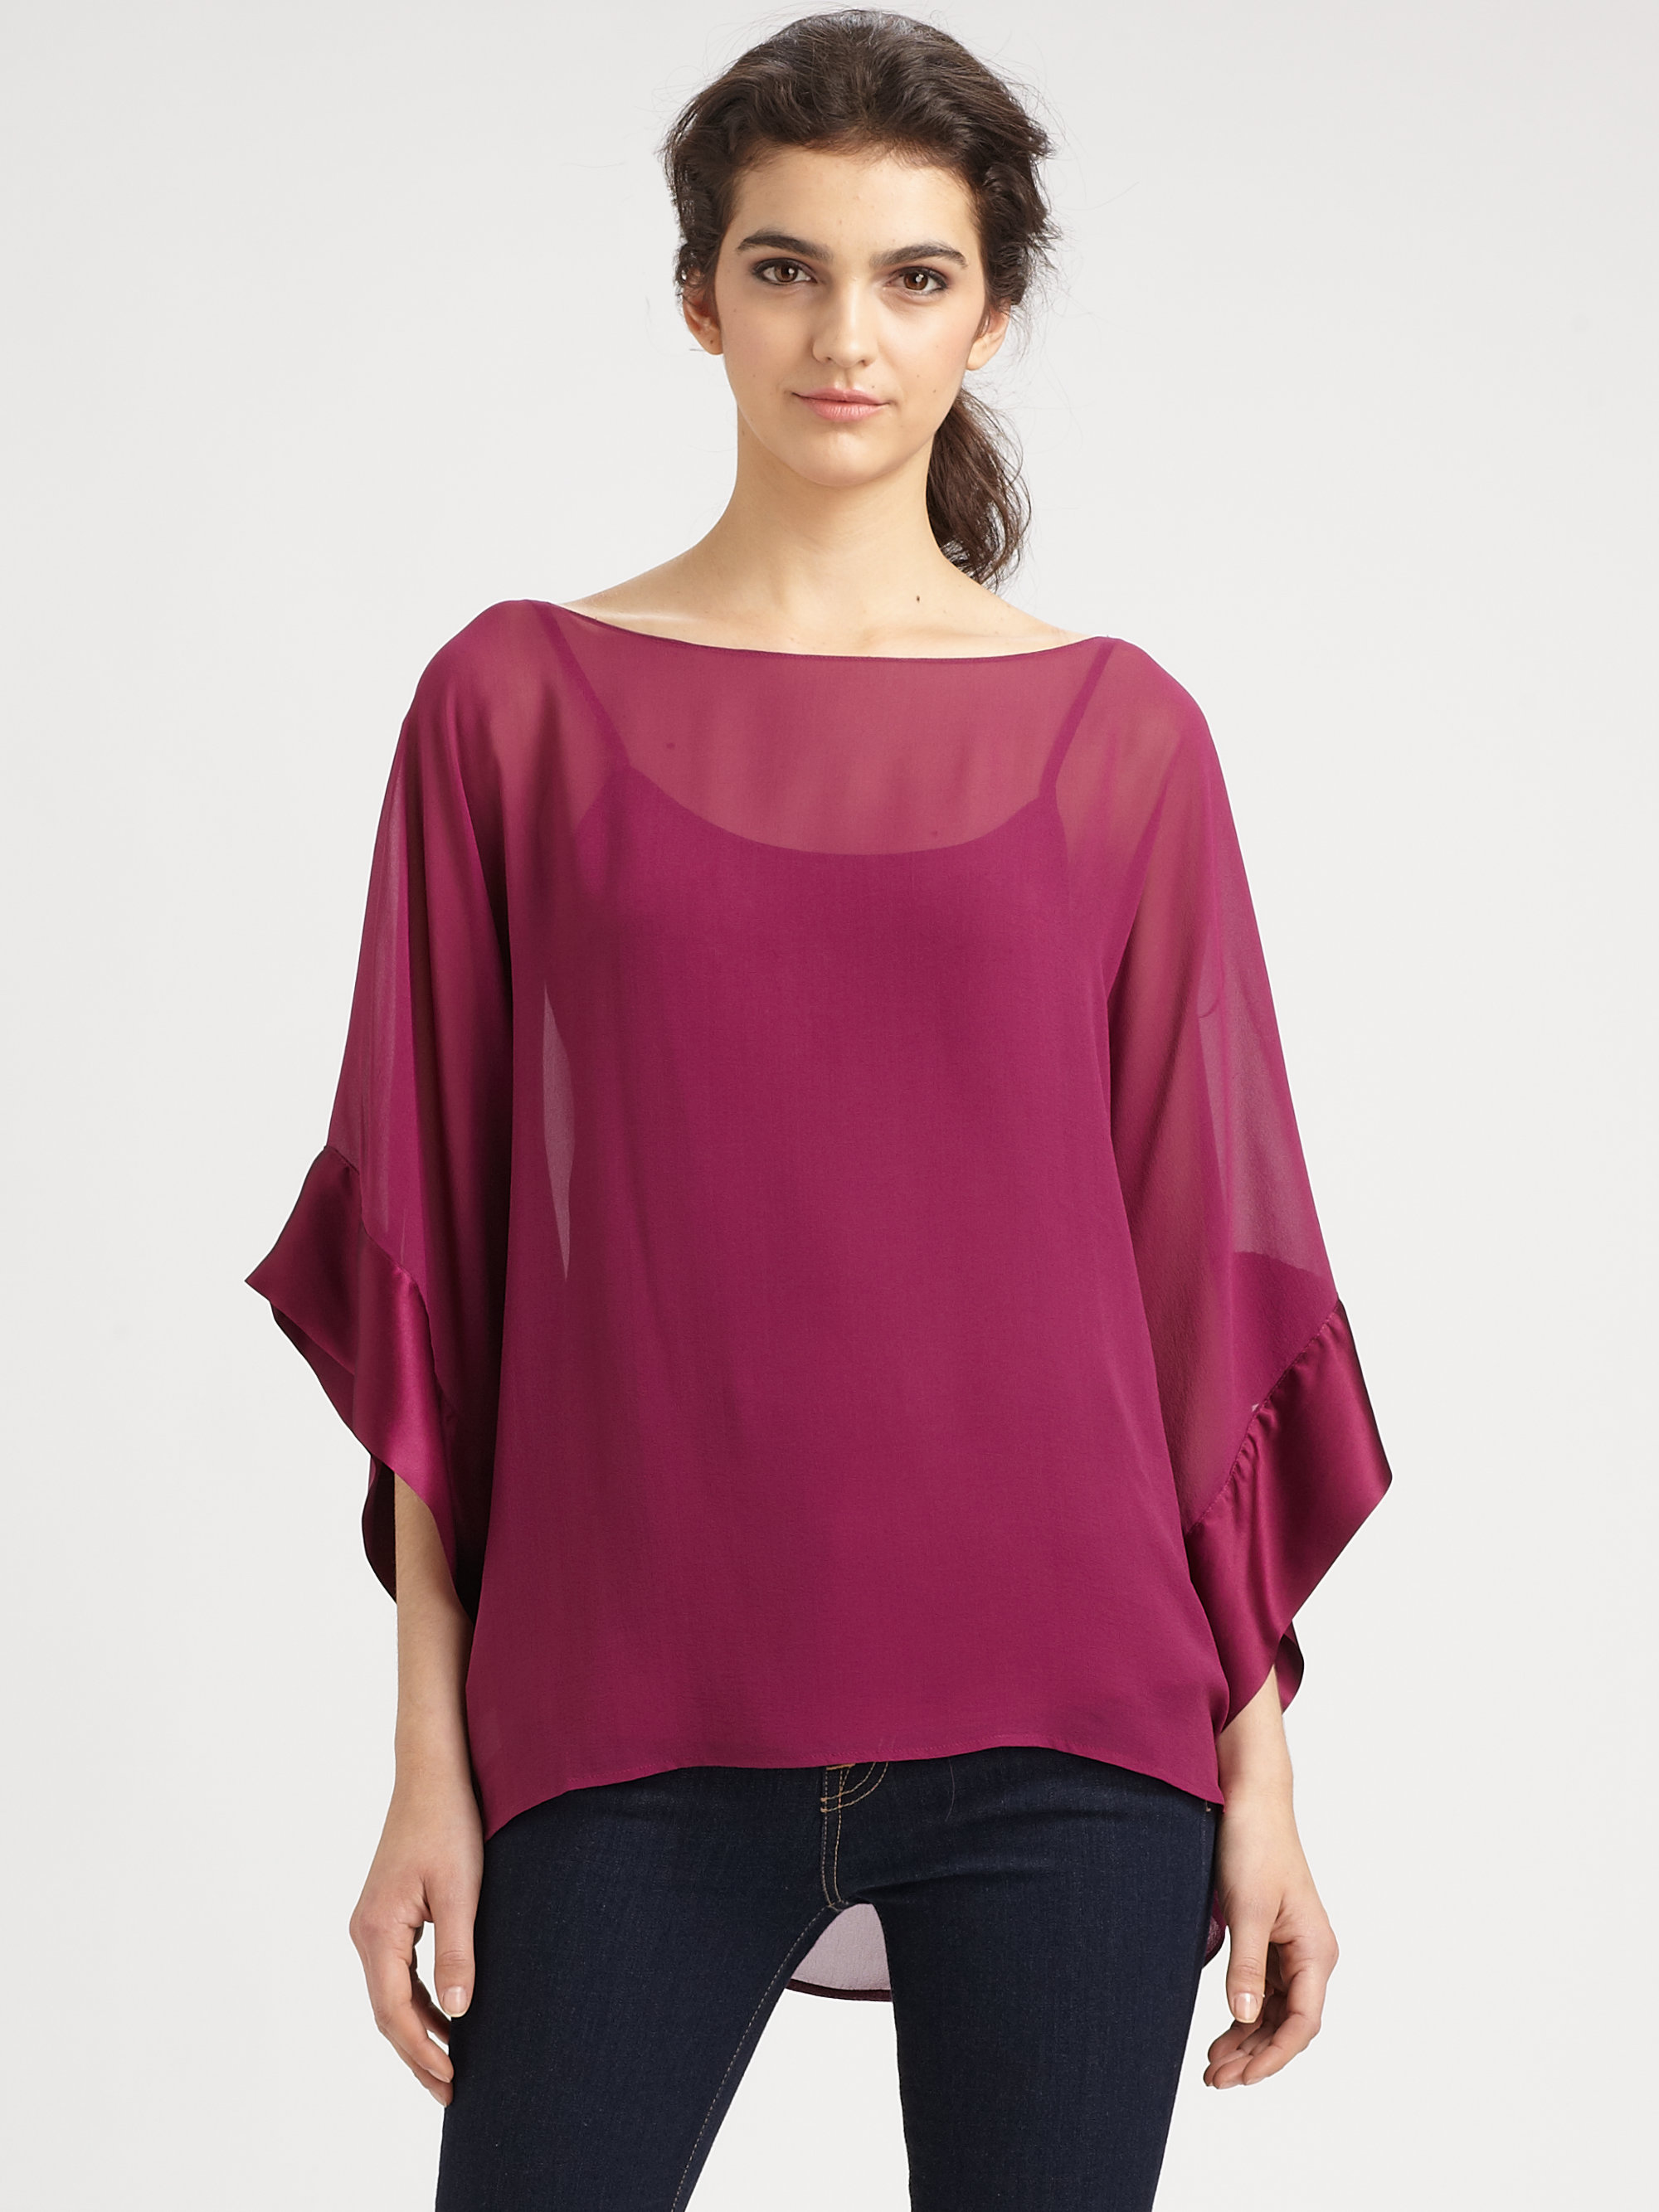 Product Features Lightweight fabric with great stretch for comfort / Loose fit dolman sleeve top.